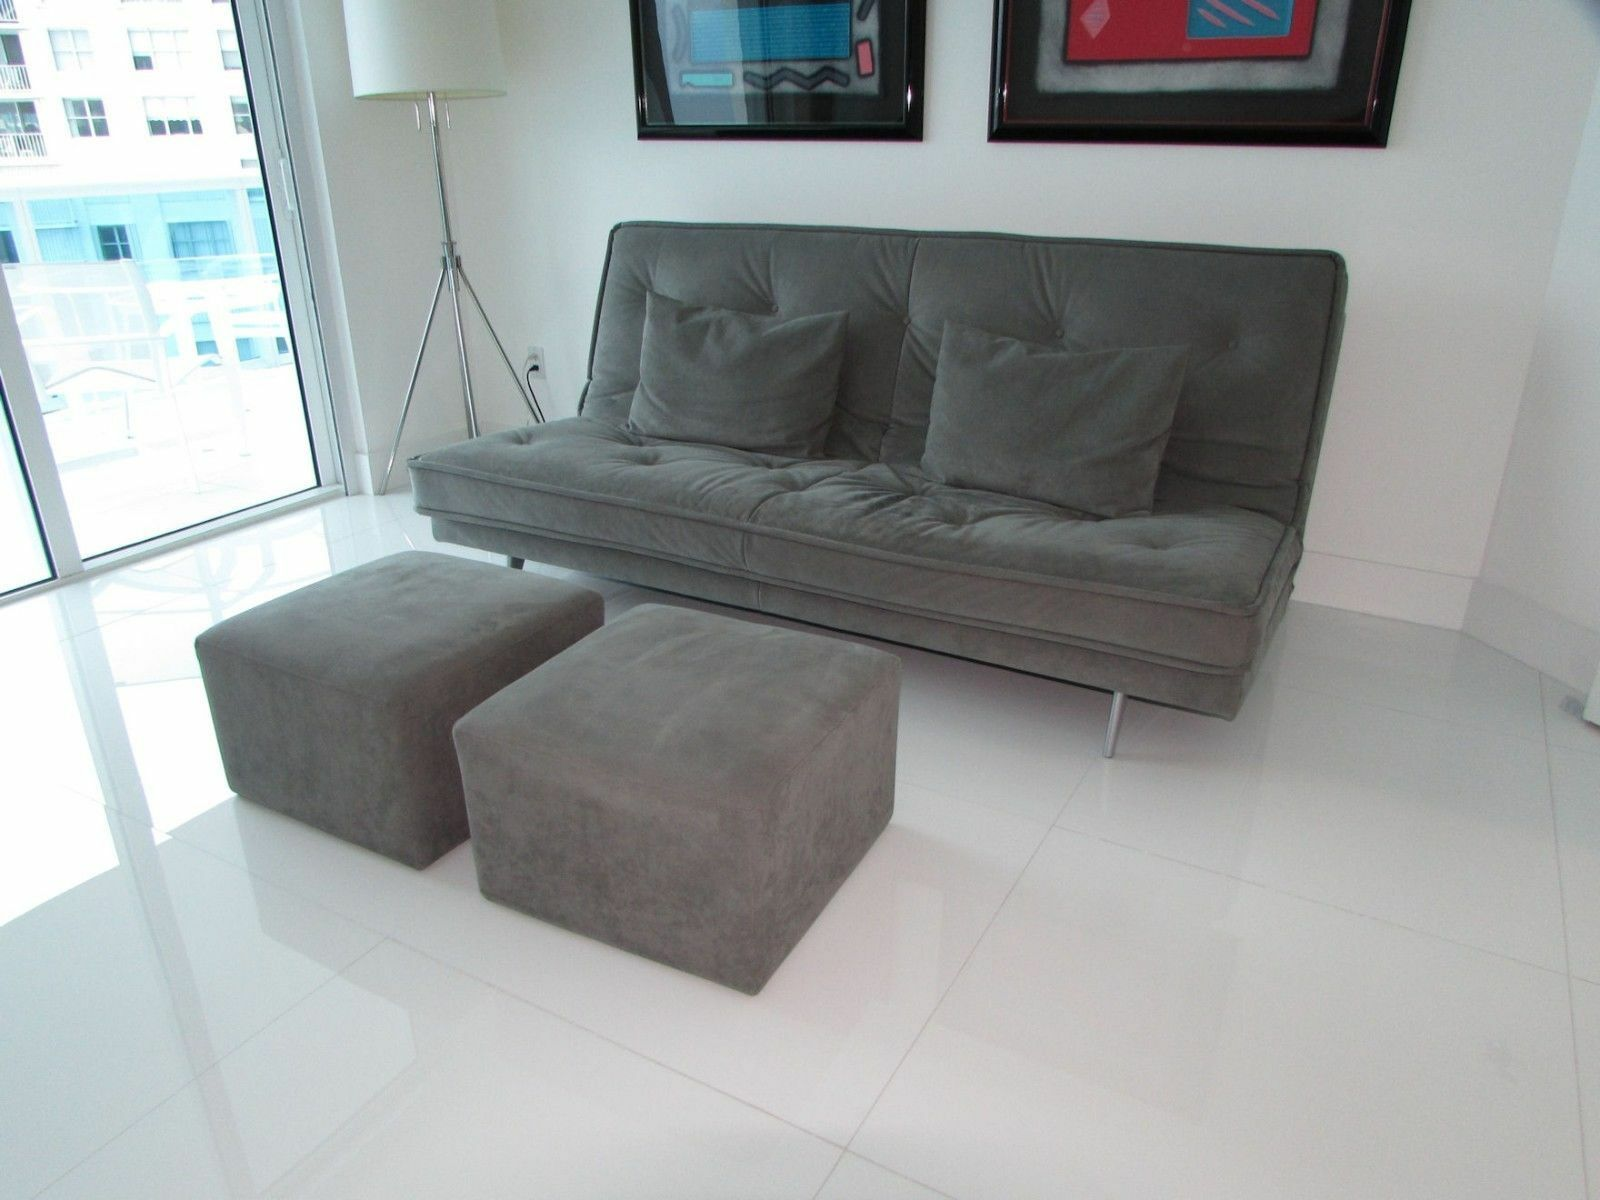 Top 10 sofa beds ebay - Ligne roset nomade sofa ...